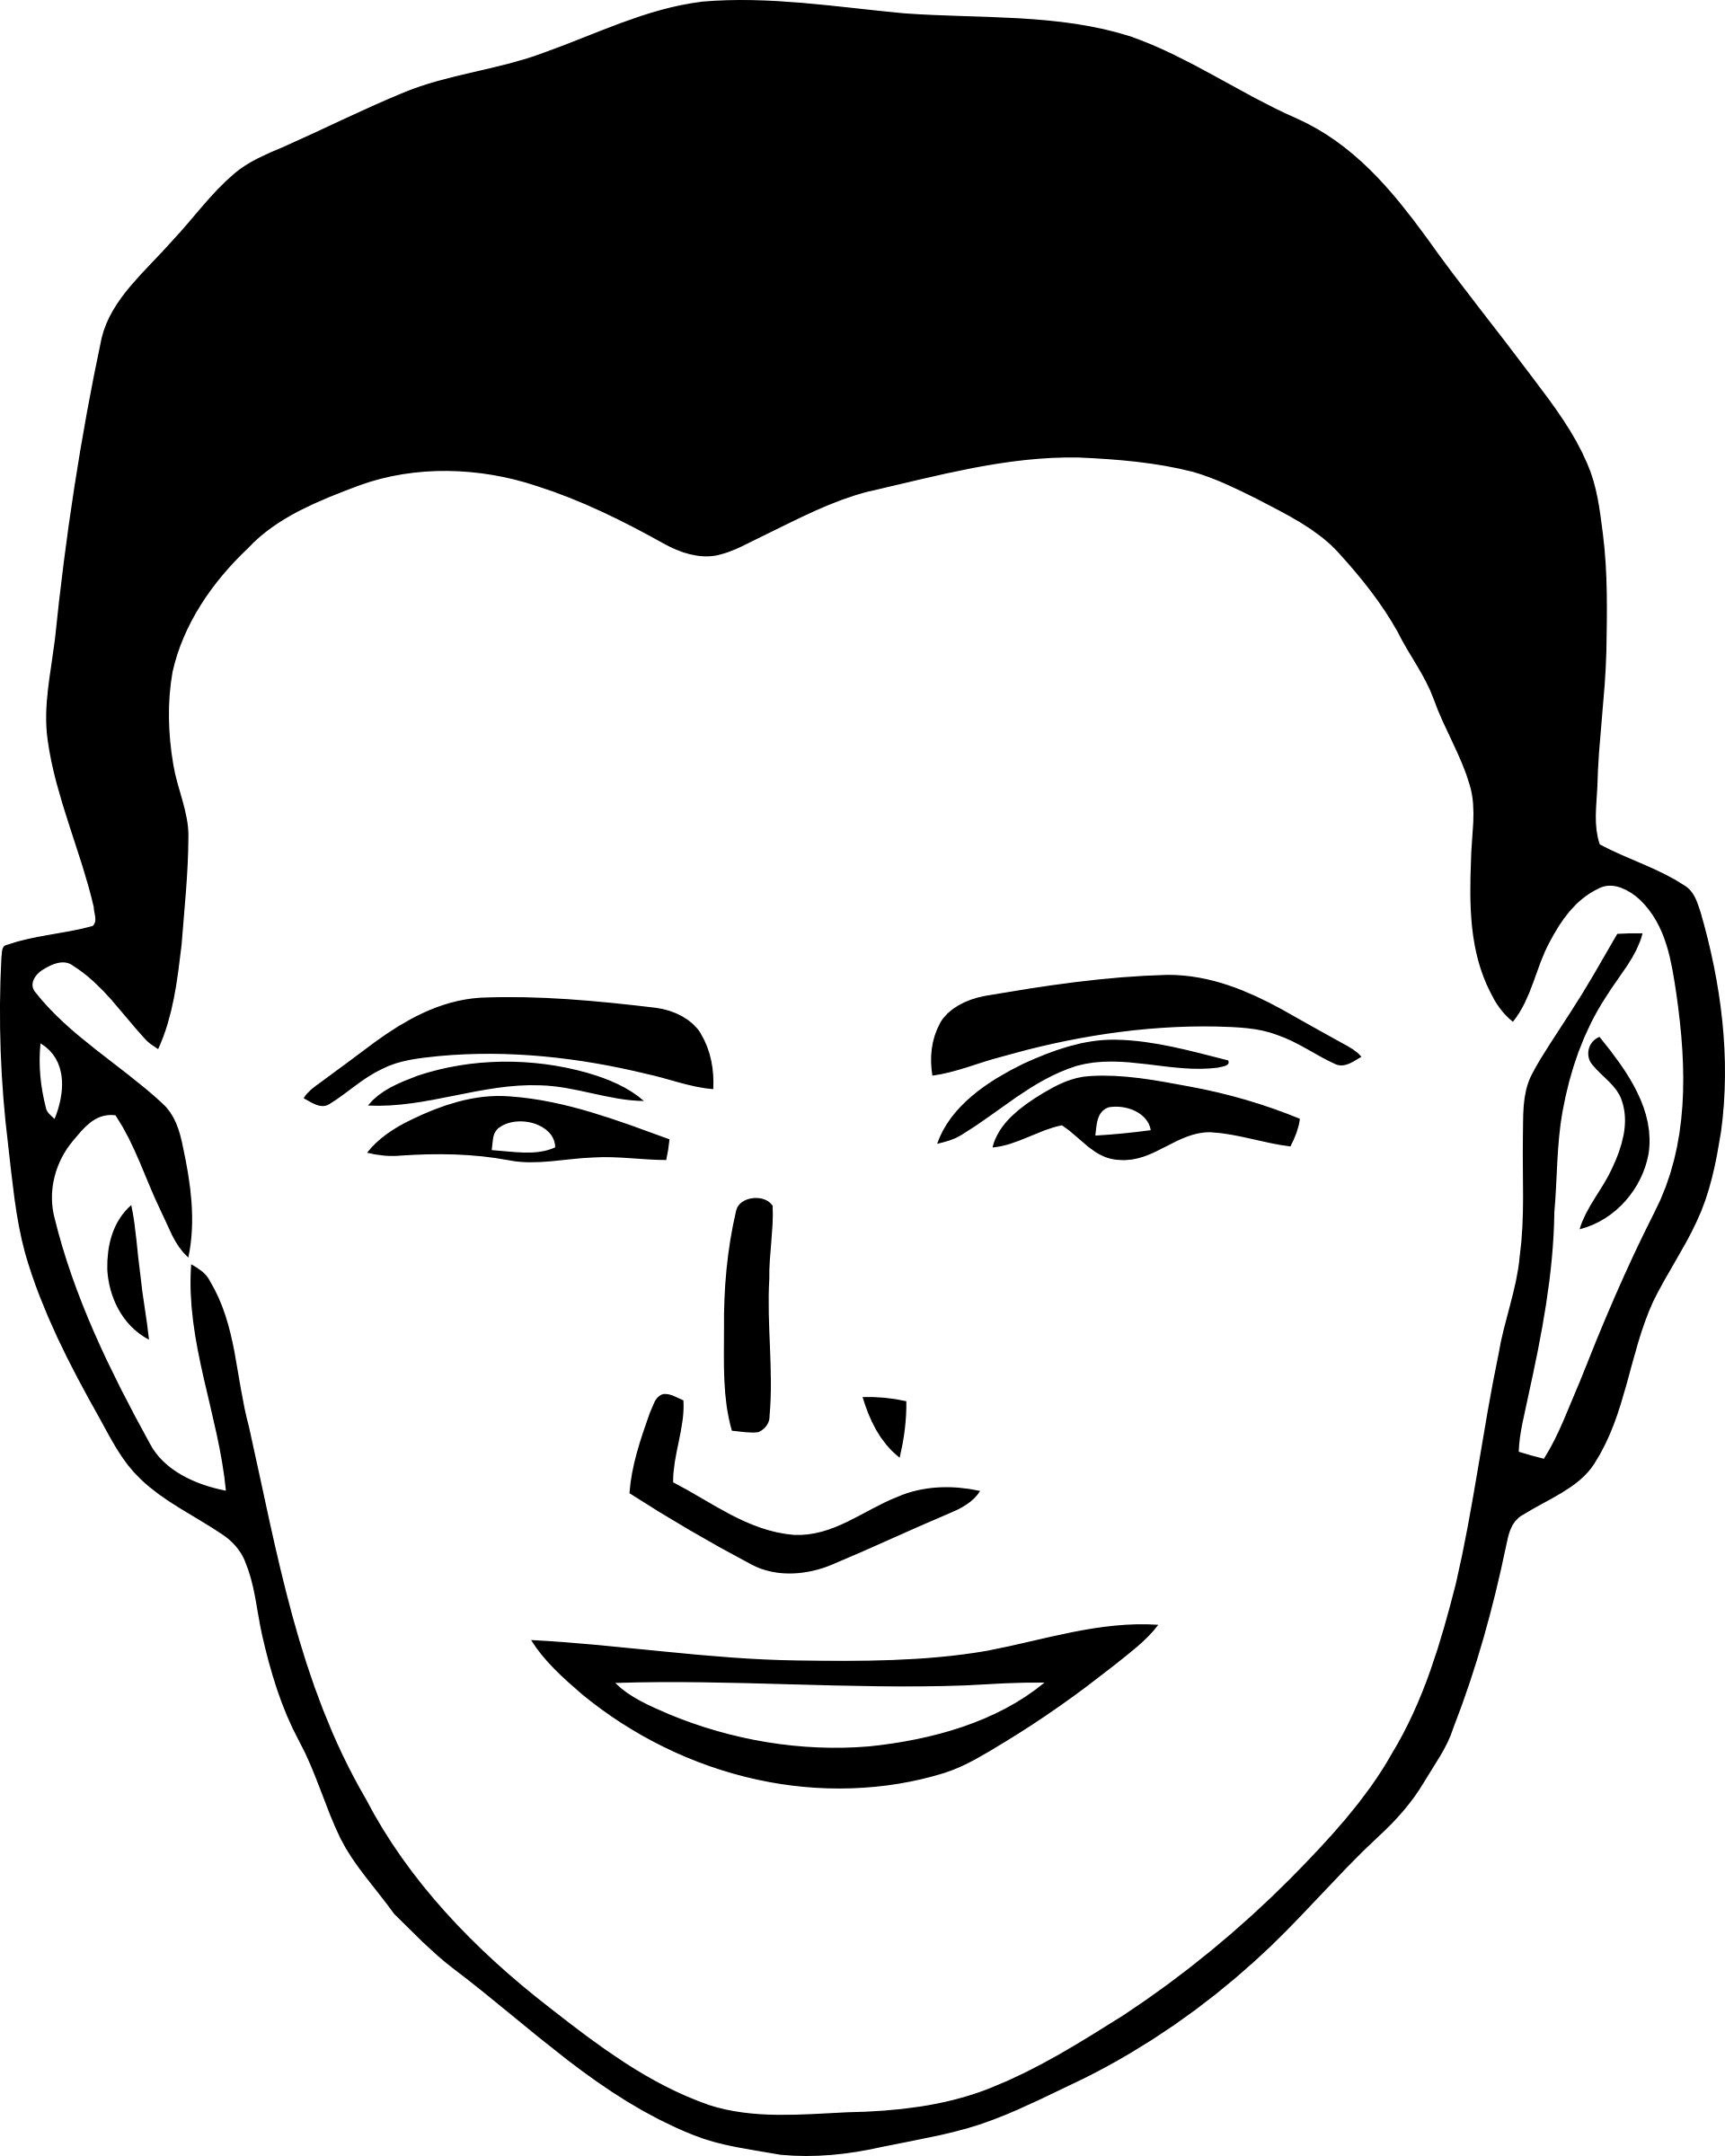 Male eyebrow png. Smiling man icons free